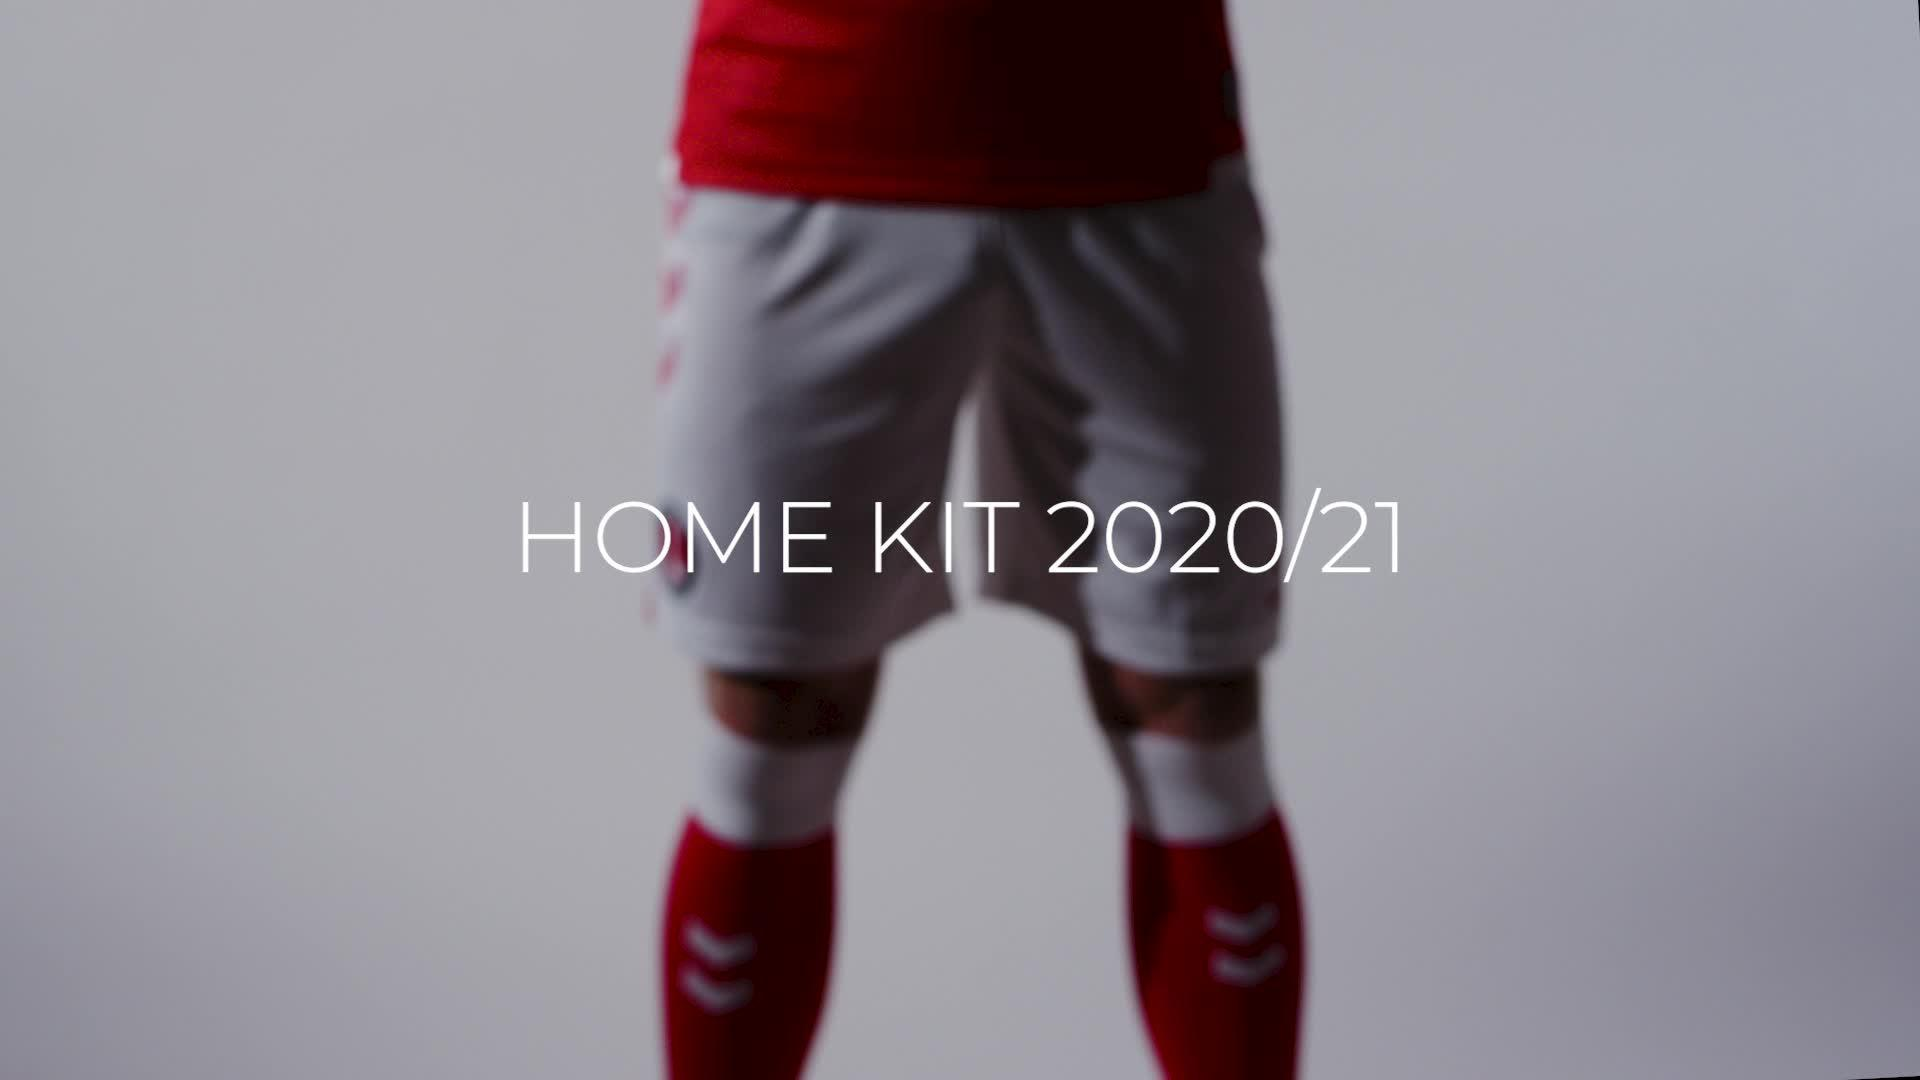 Home kit reveal 2020/21